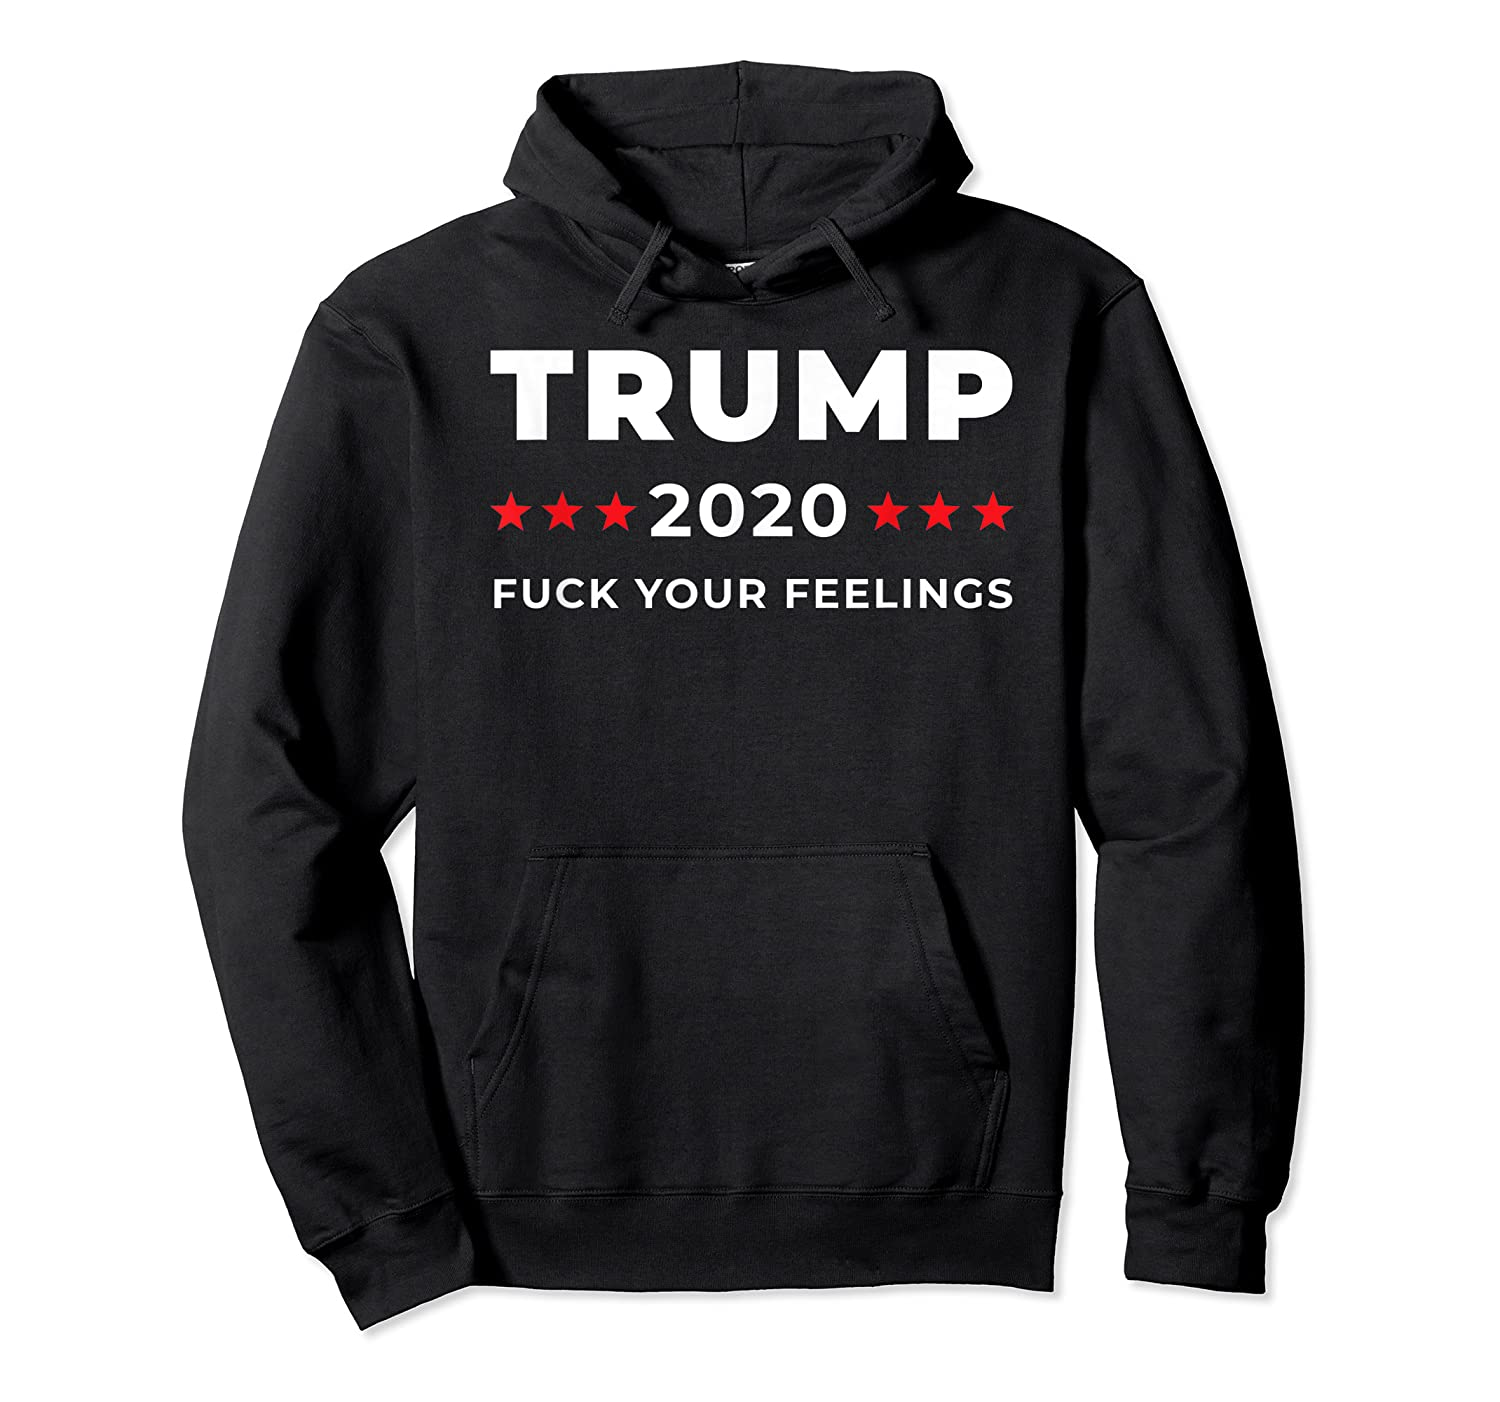 Trump 2020 Fuck Your Feelngs Shirts Unisex Pullover Hoodie